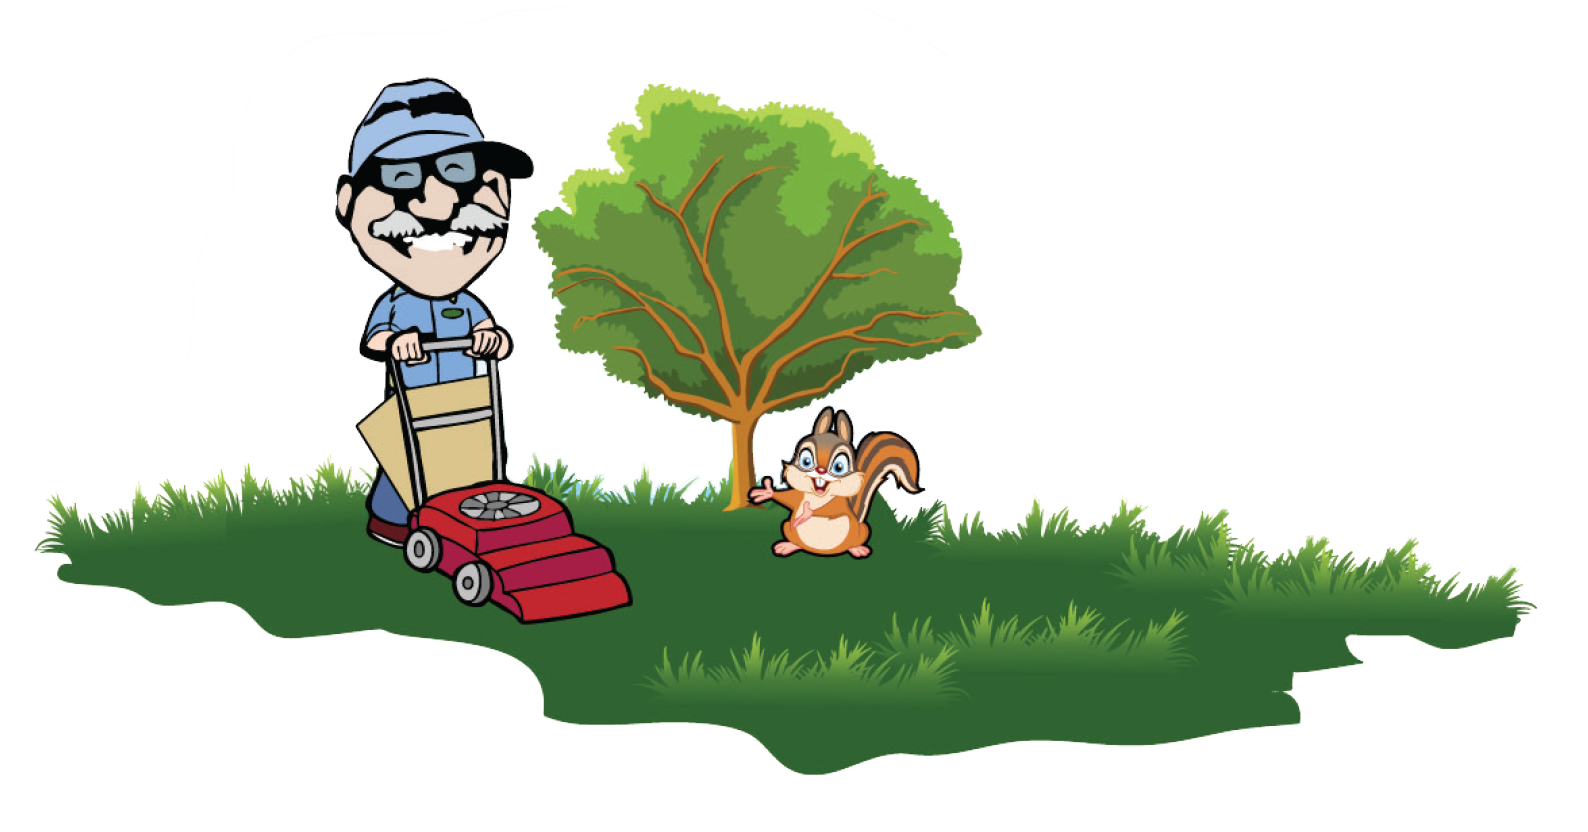 vector free stock Landscaping clipart landscaping service. Grounds keeping services st.